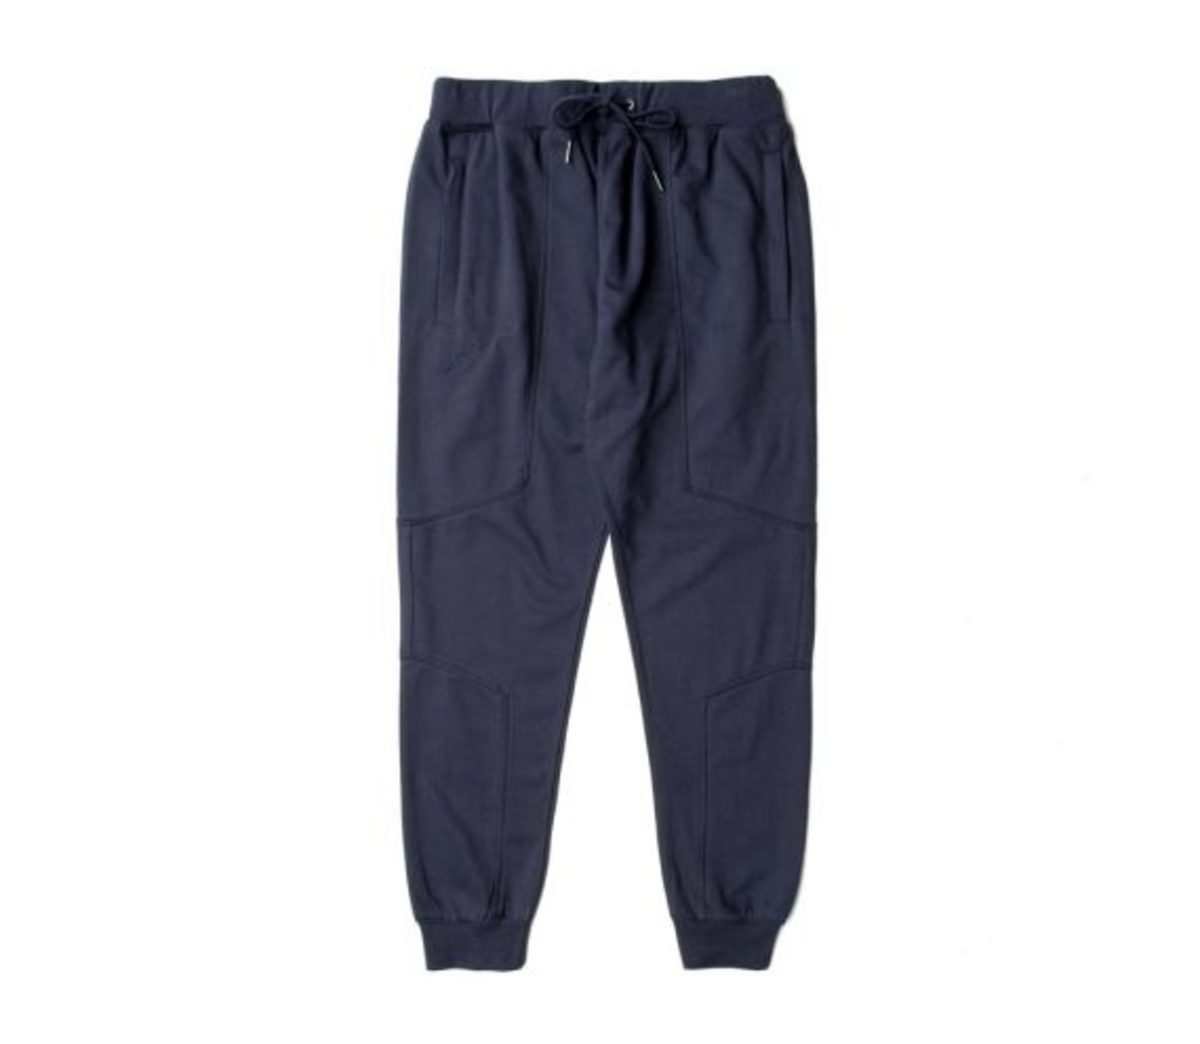 12-days-freshness-publish-brand-joggers-fleece-collection-07